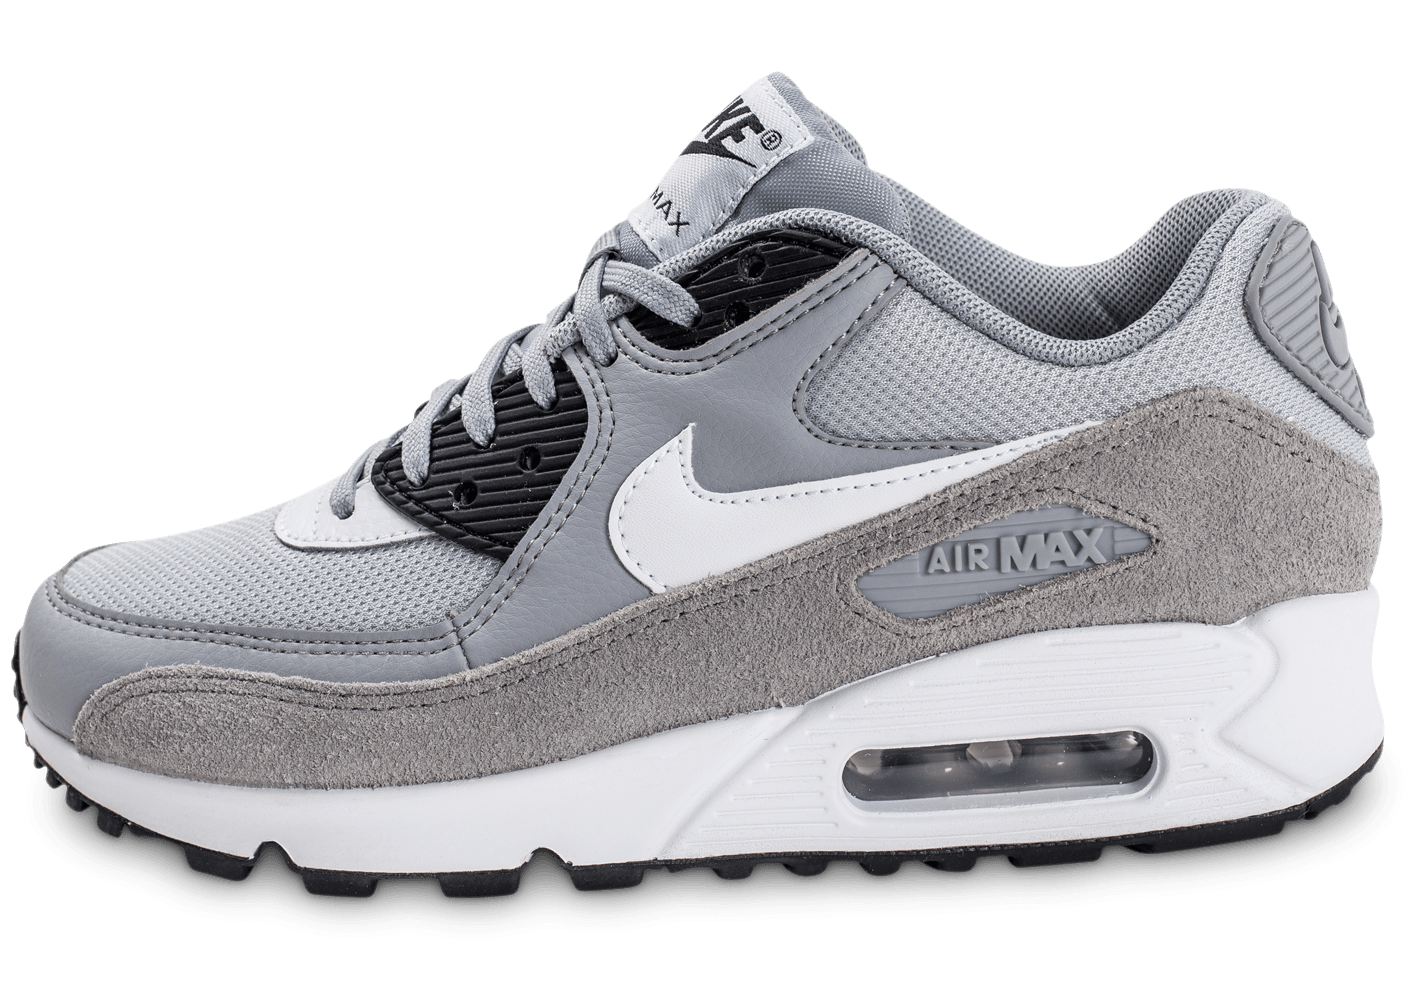 nike air max 90 w grise chaussures chaussures homme chausport. Black Bedroom Furniture Sets. Home Design Ideas